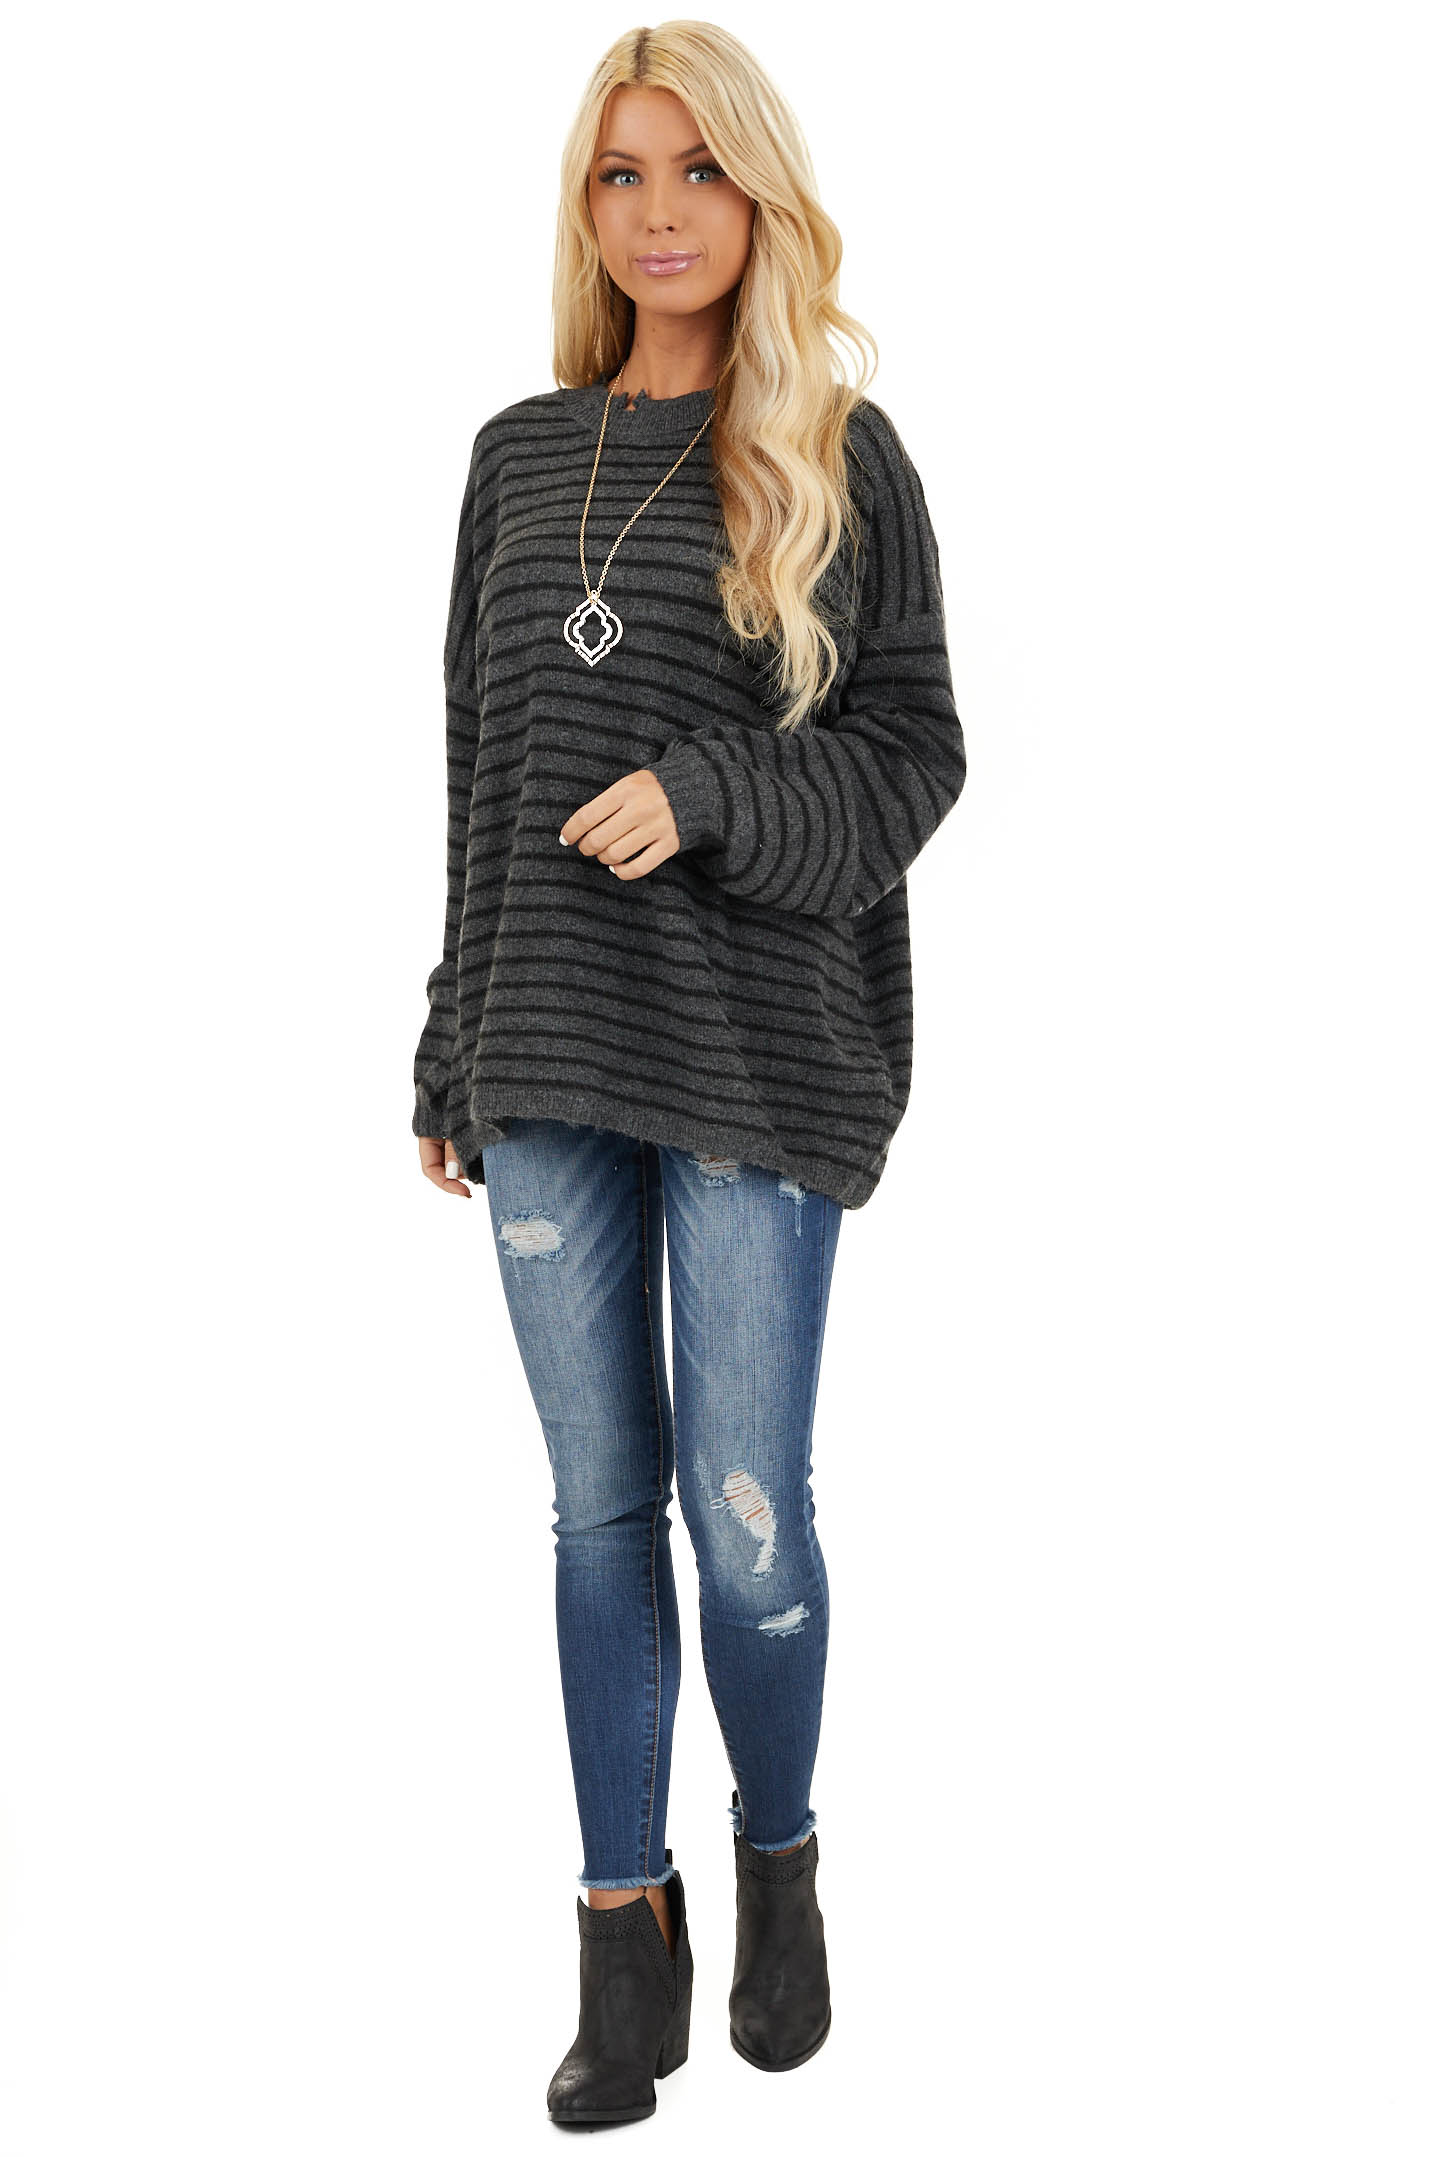 Black and Charcoal Striped Sweater with Distressed Neckline front full body